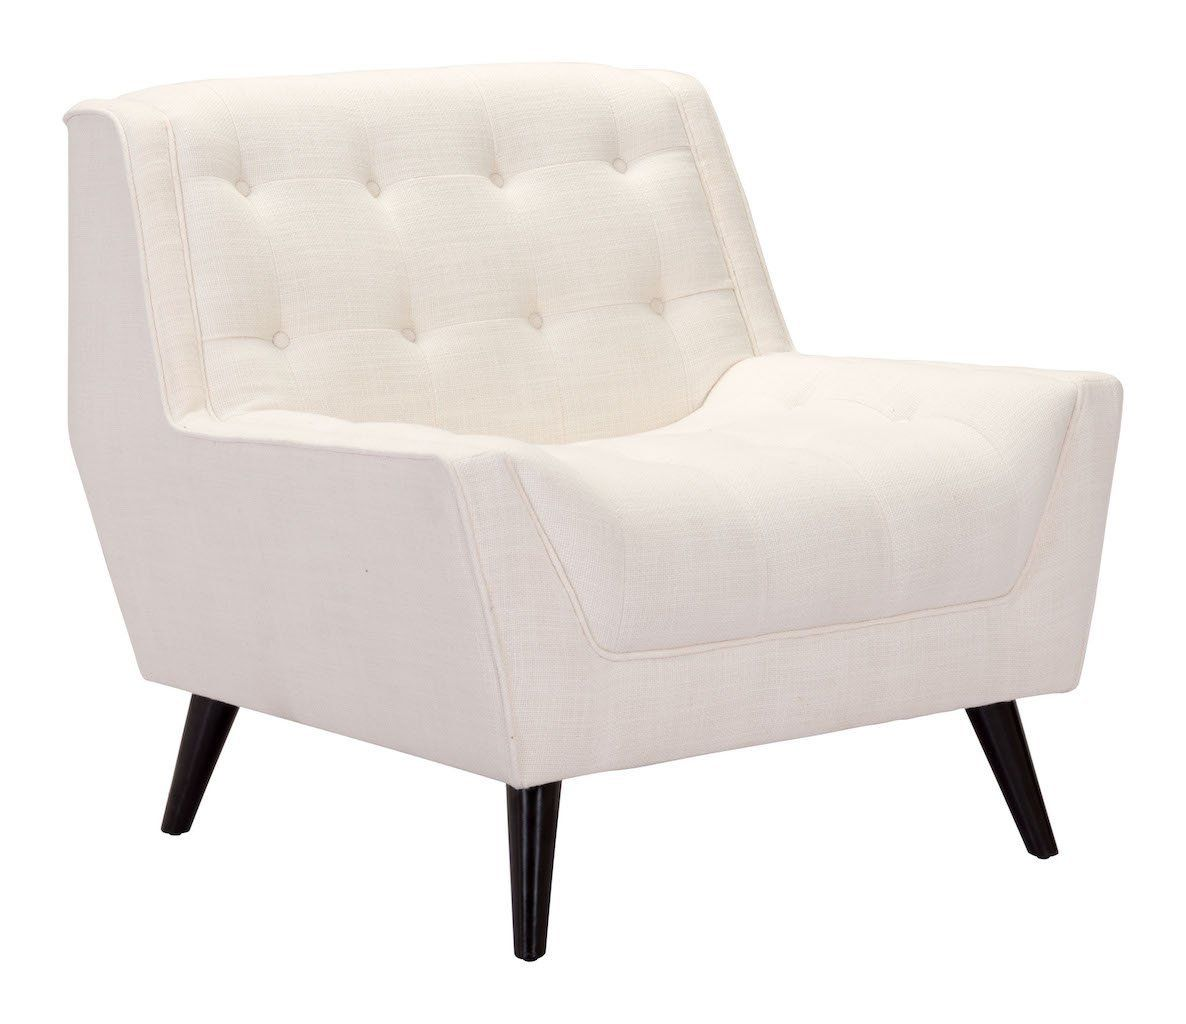 Shop Luxurious Sofas Online Furniture Store Modern Furniture Has A